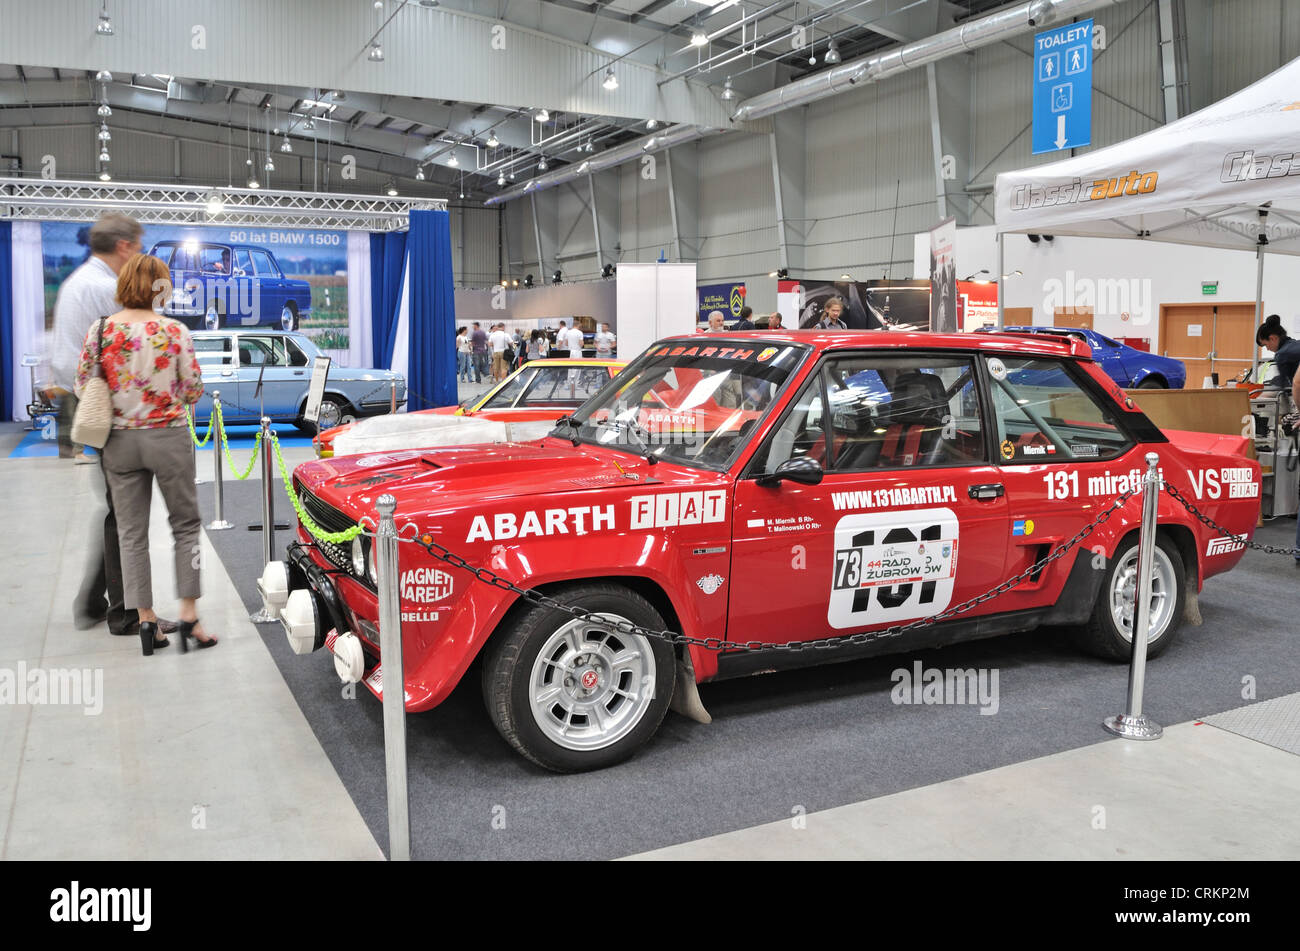 Vintage Car Fiat 131 Abarth Rally Stock Photo Alamy